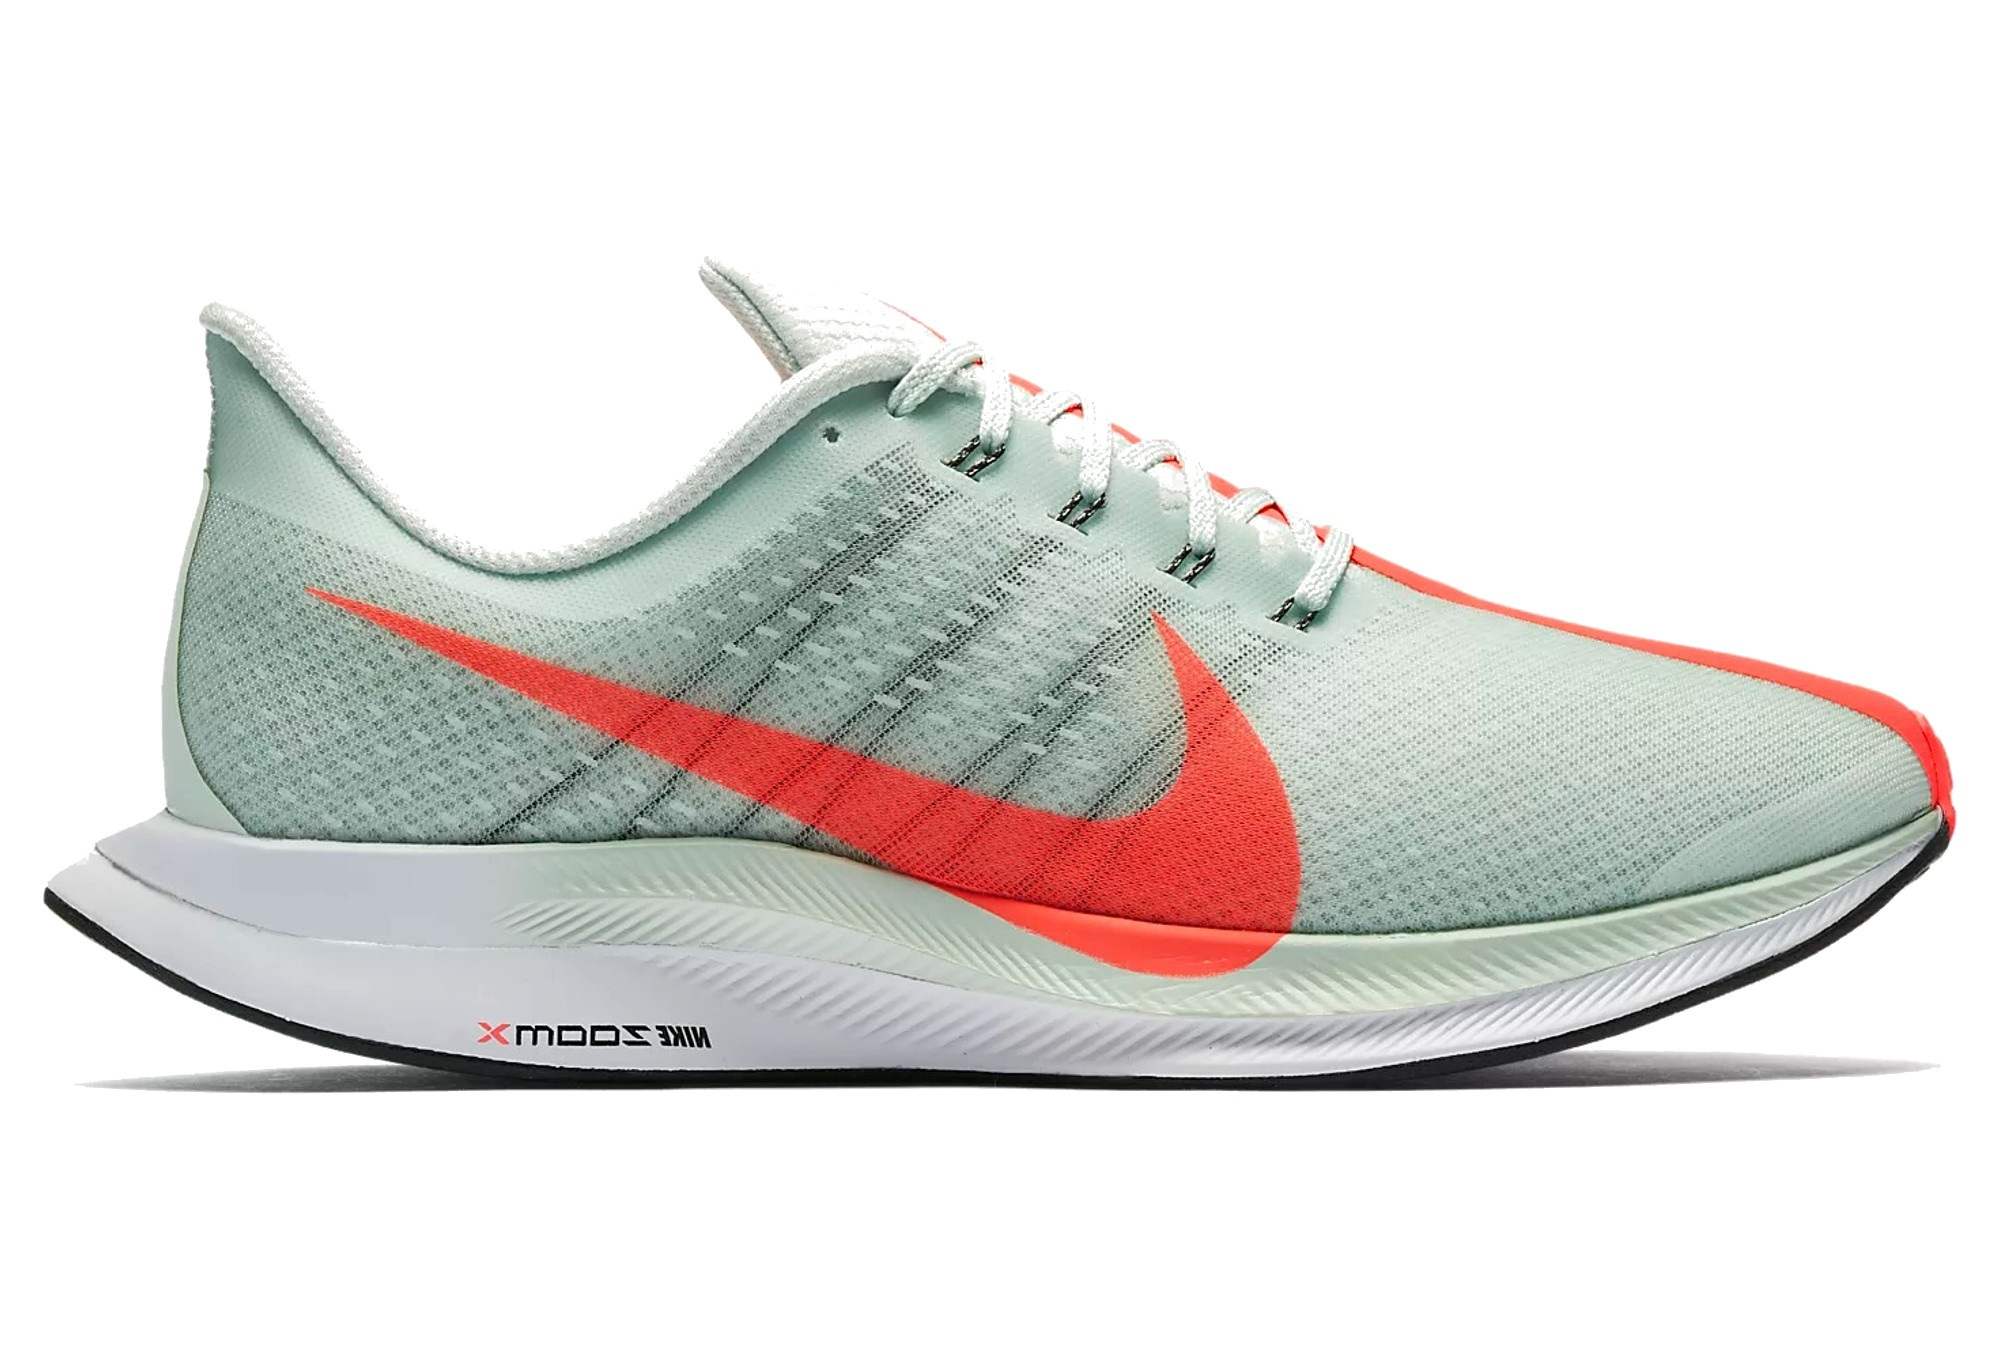 competitive price 38f6d 2ce5d Nike Shoes Zoom Pegasus Turbo Grey Red Women  Alltricks.com